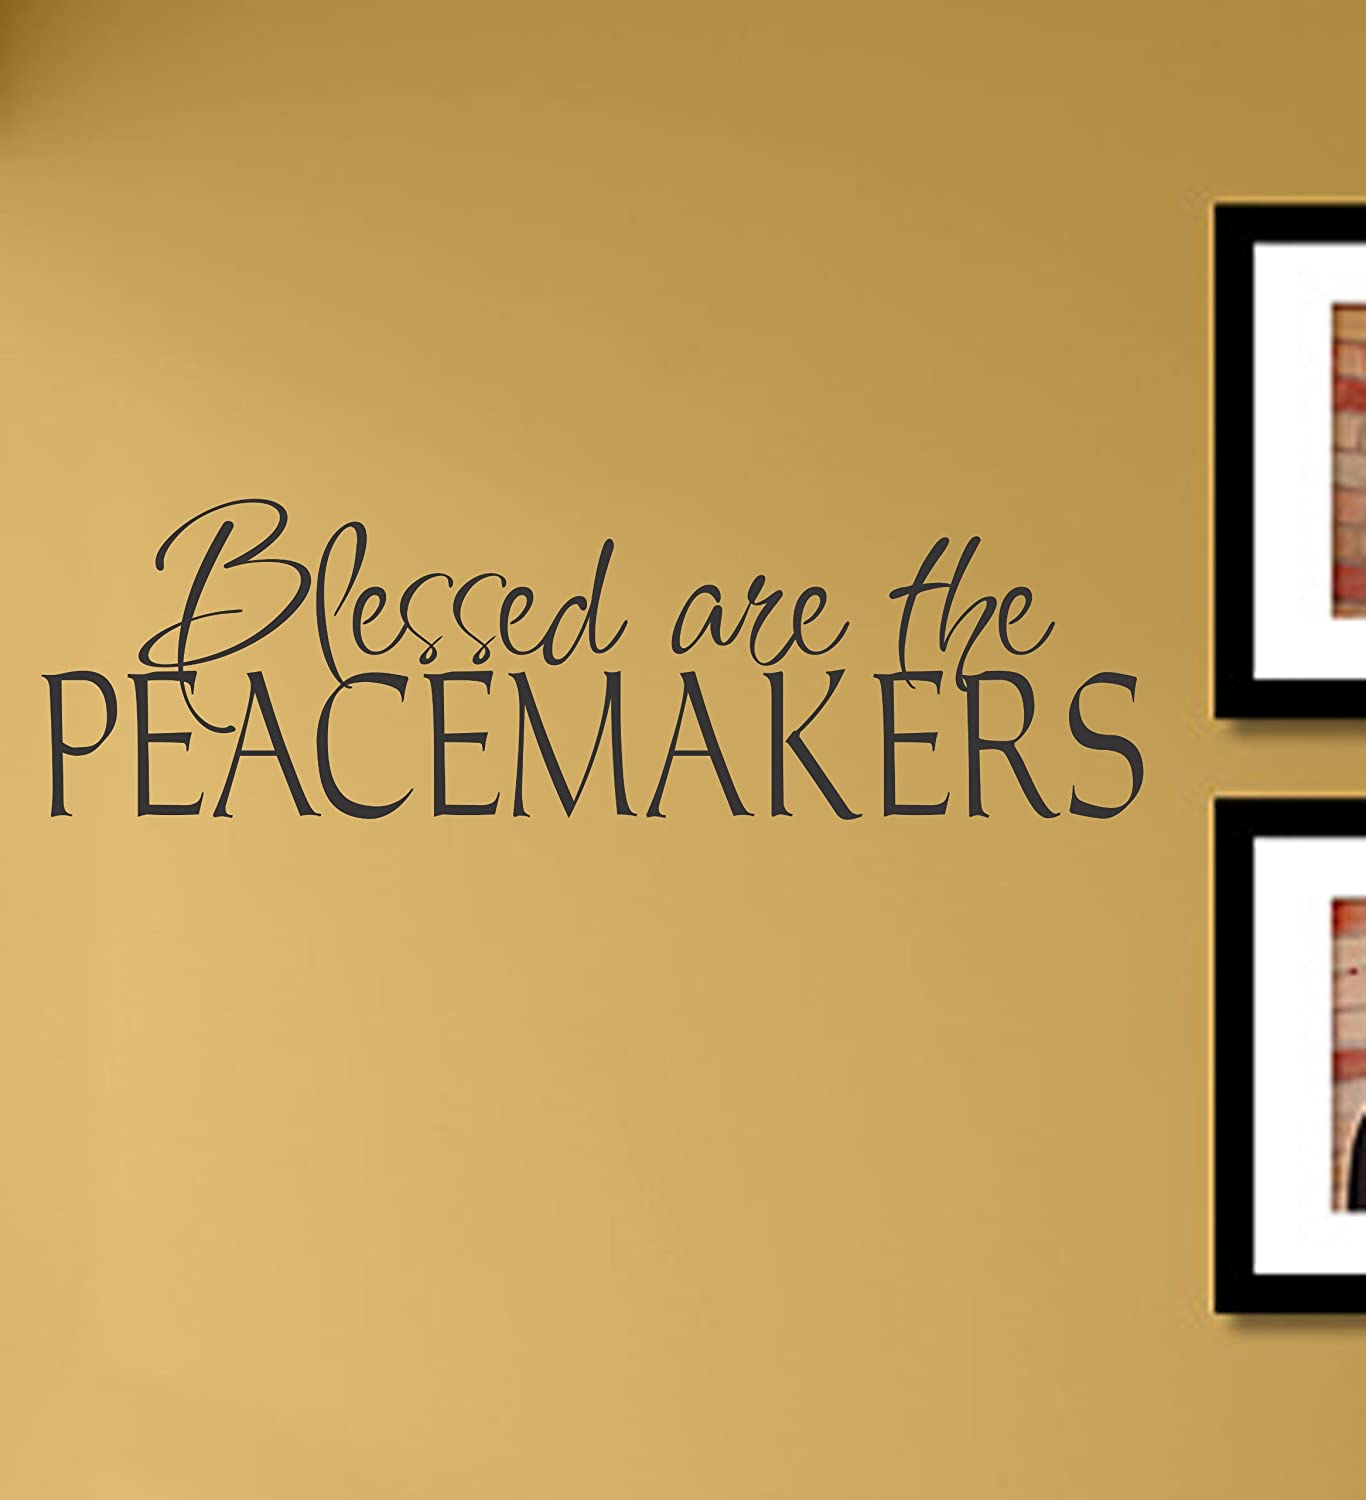 Amazon.com: Blessed are the peacemakers Vinyl Wall Decals Quotes ...